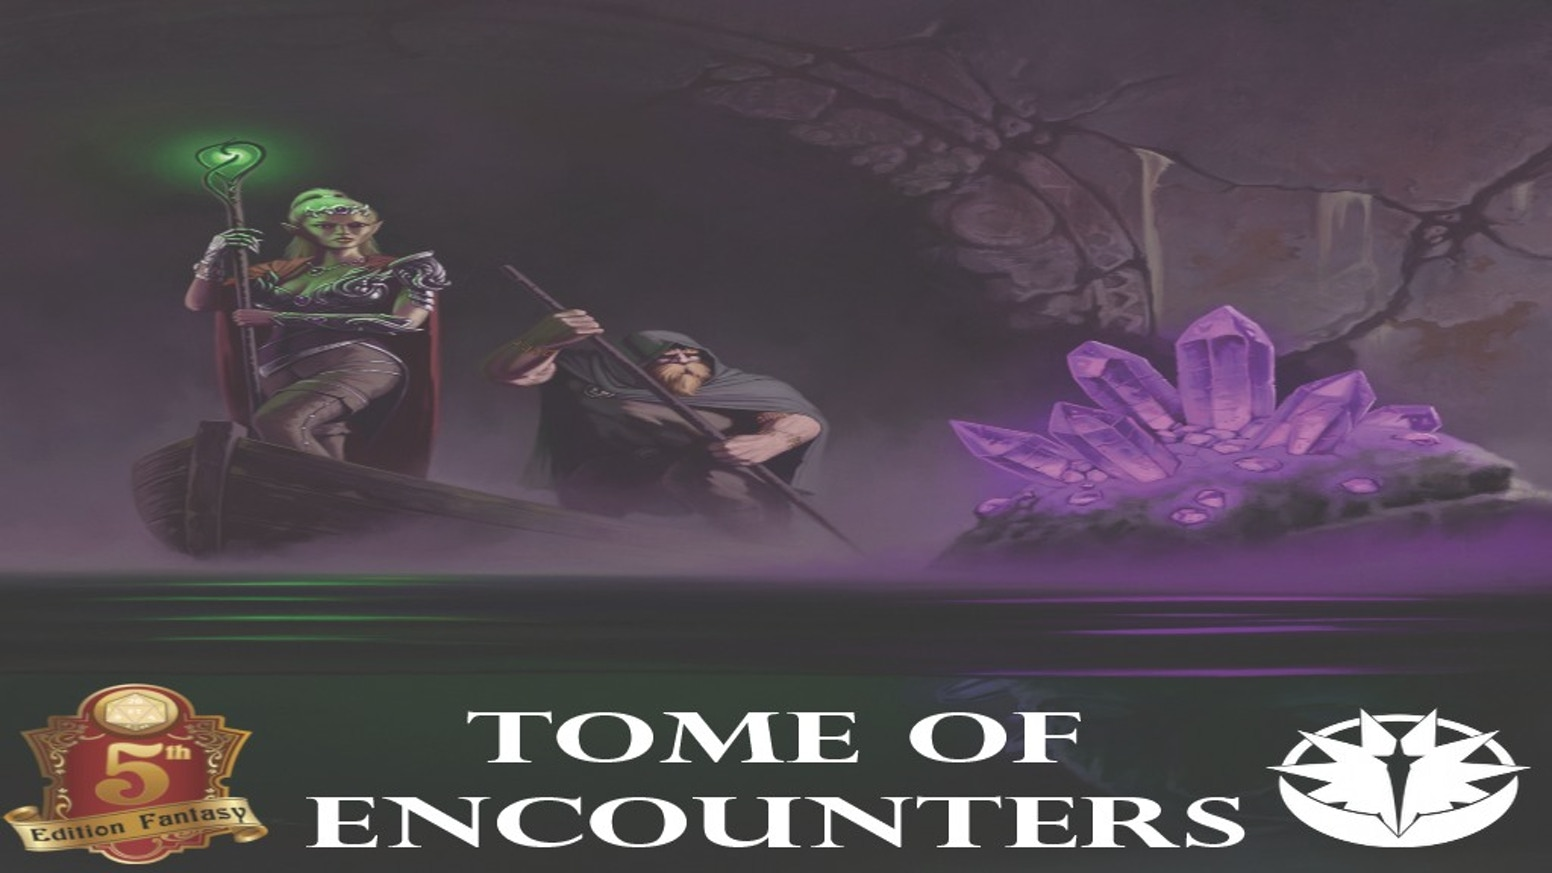 A repository of encounters to add a quick bit of danger to any 5e adventure or campaign!